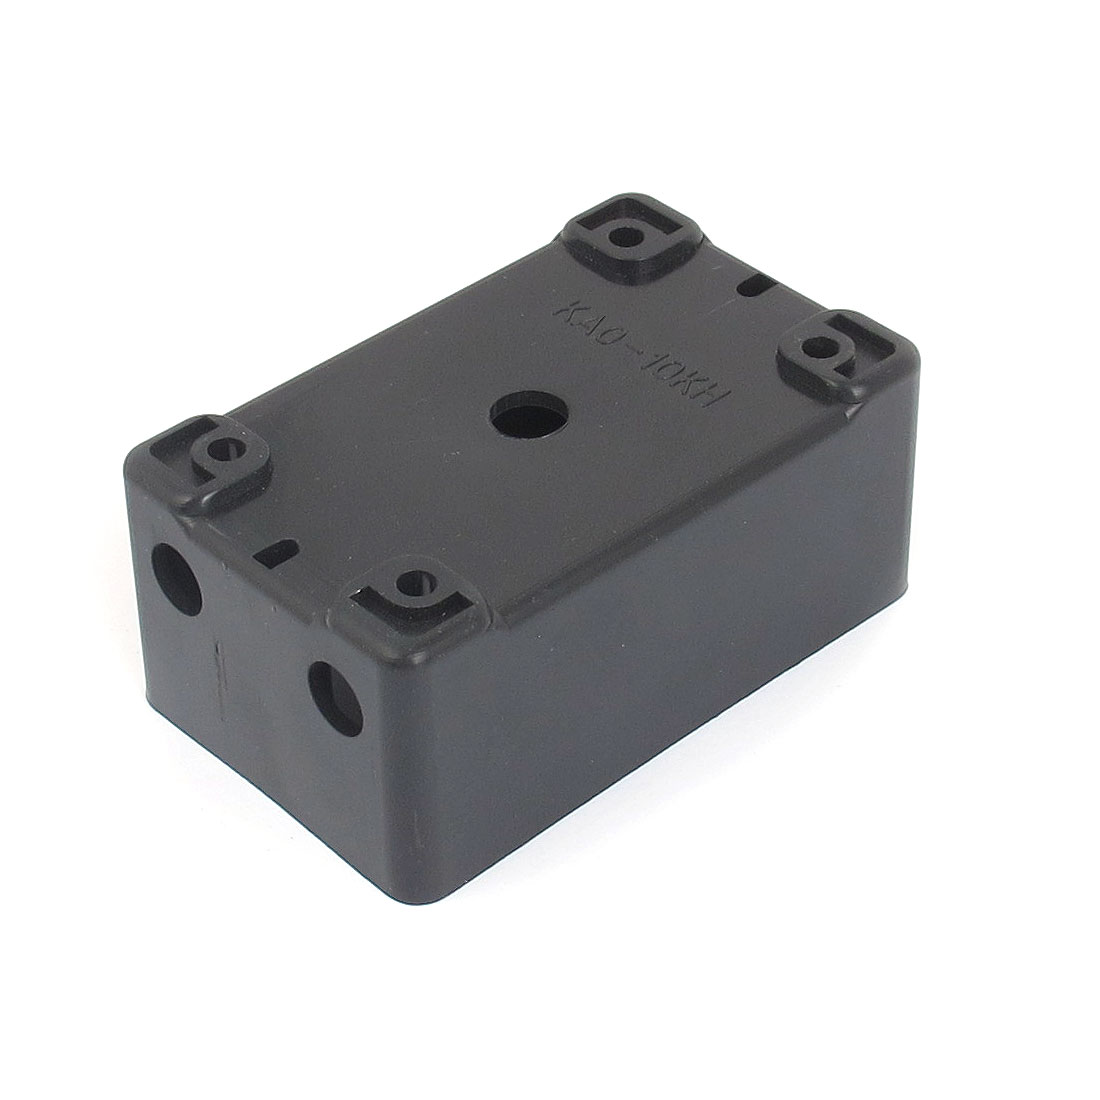 9cm x 5.5cm x 4cm Black Plastic Water Resistant Electrical Project Enclosure Case DIY Junction Box